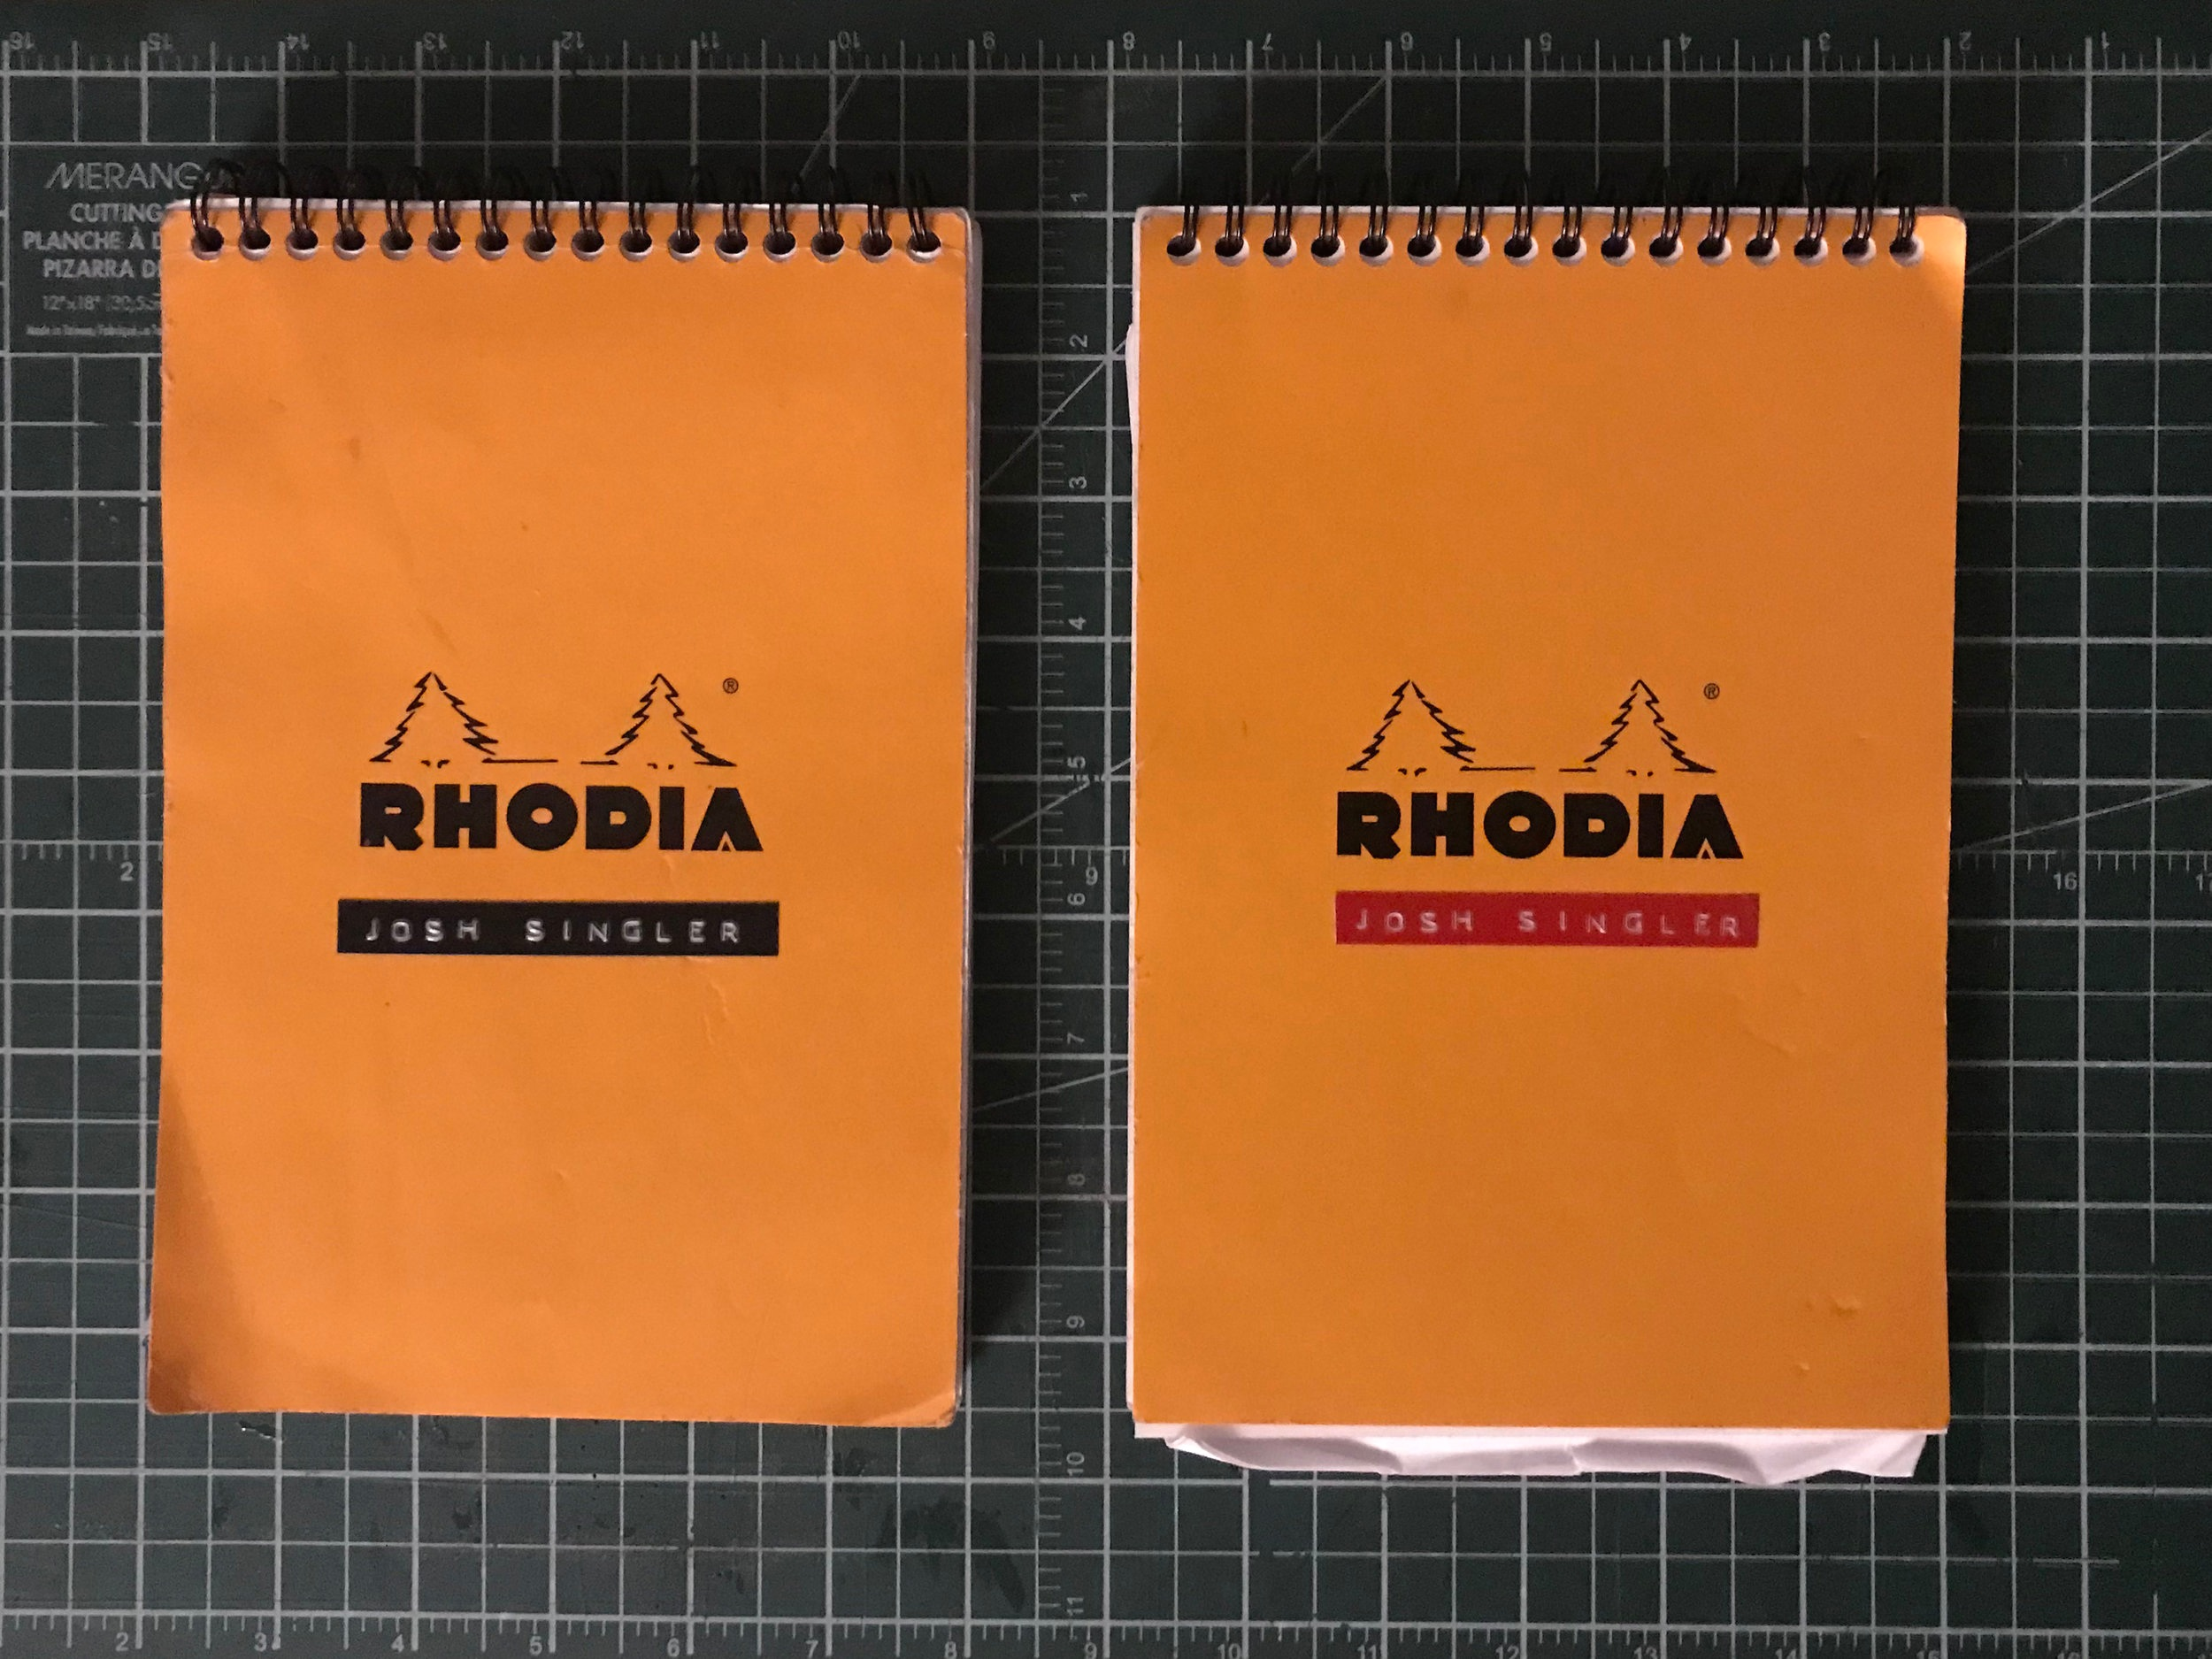 NOTEBOOK A SEMESTER  Starting from the first semester I've filled up one a Rhodia notebook. My aim is to fill up one for each semester of study. Inside these notebooks is mainly notes from classes, readings, and lectures.